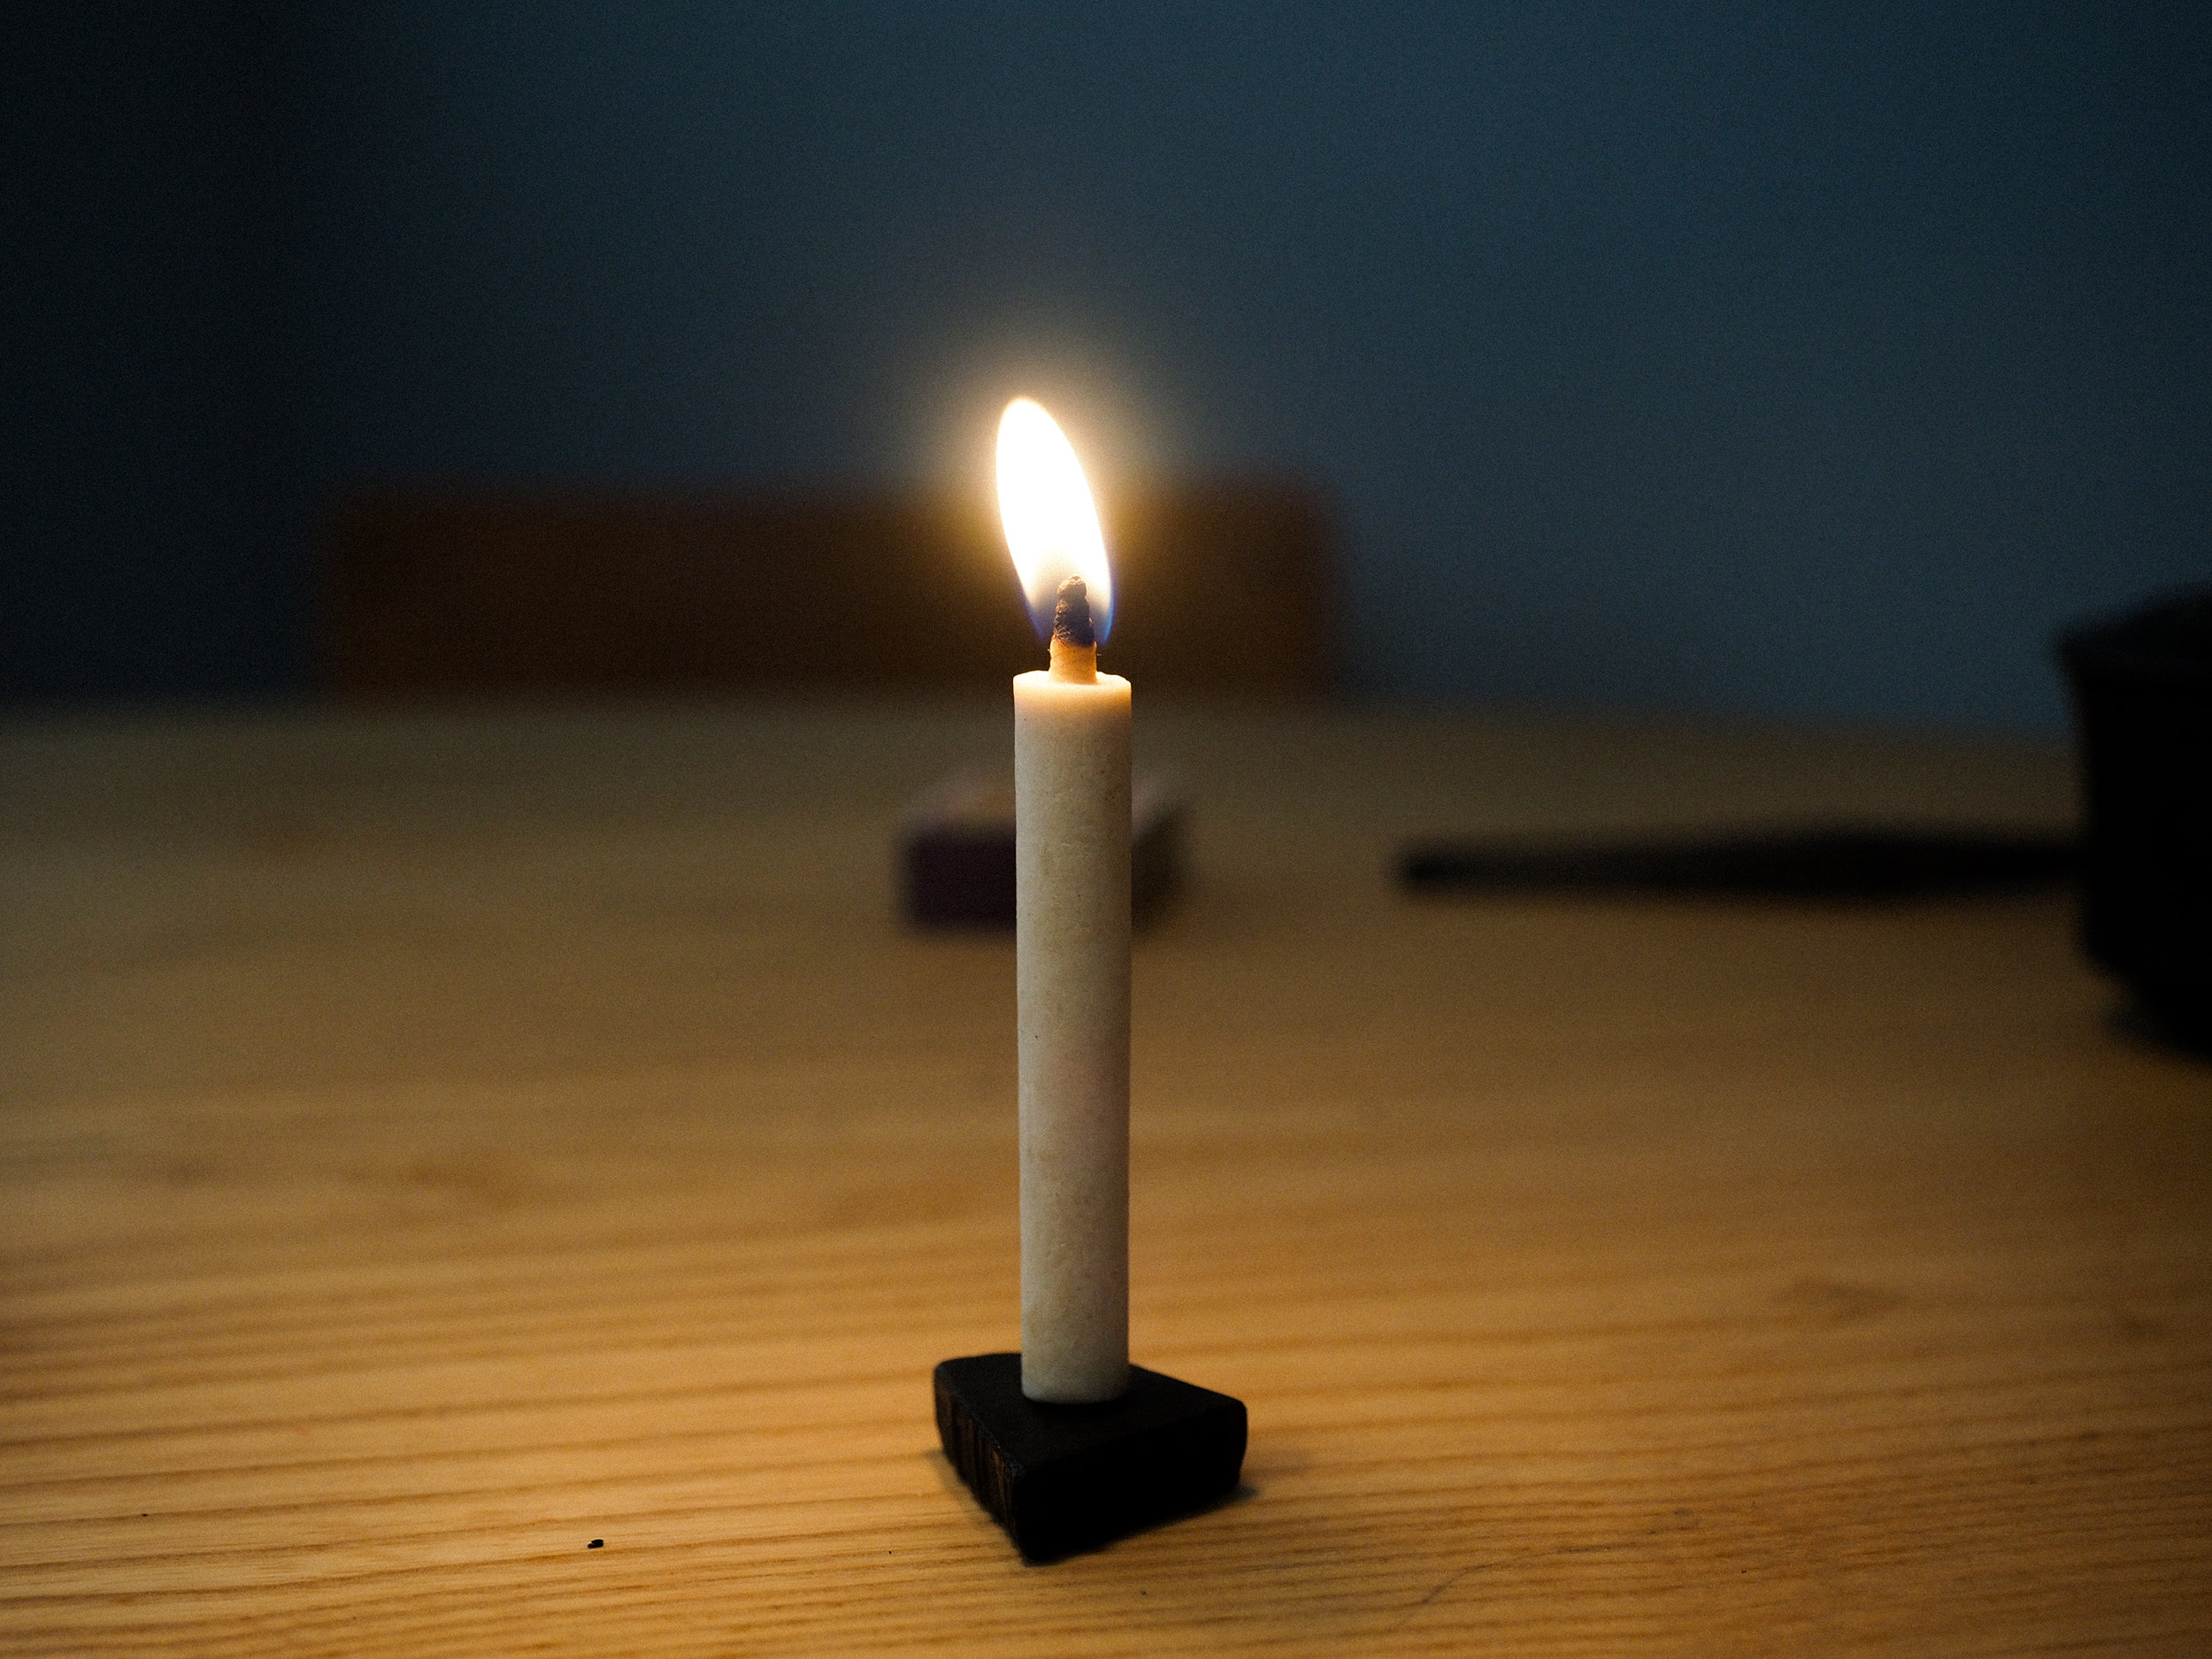 Candles are Burned in slow, mindful ritual.  Daiyo candles are used in Buddhist temples throughout Japan.